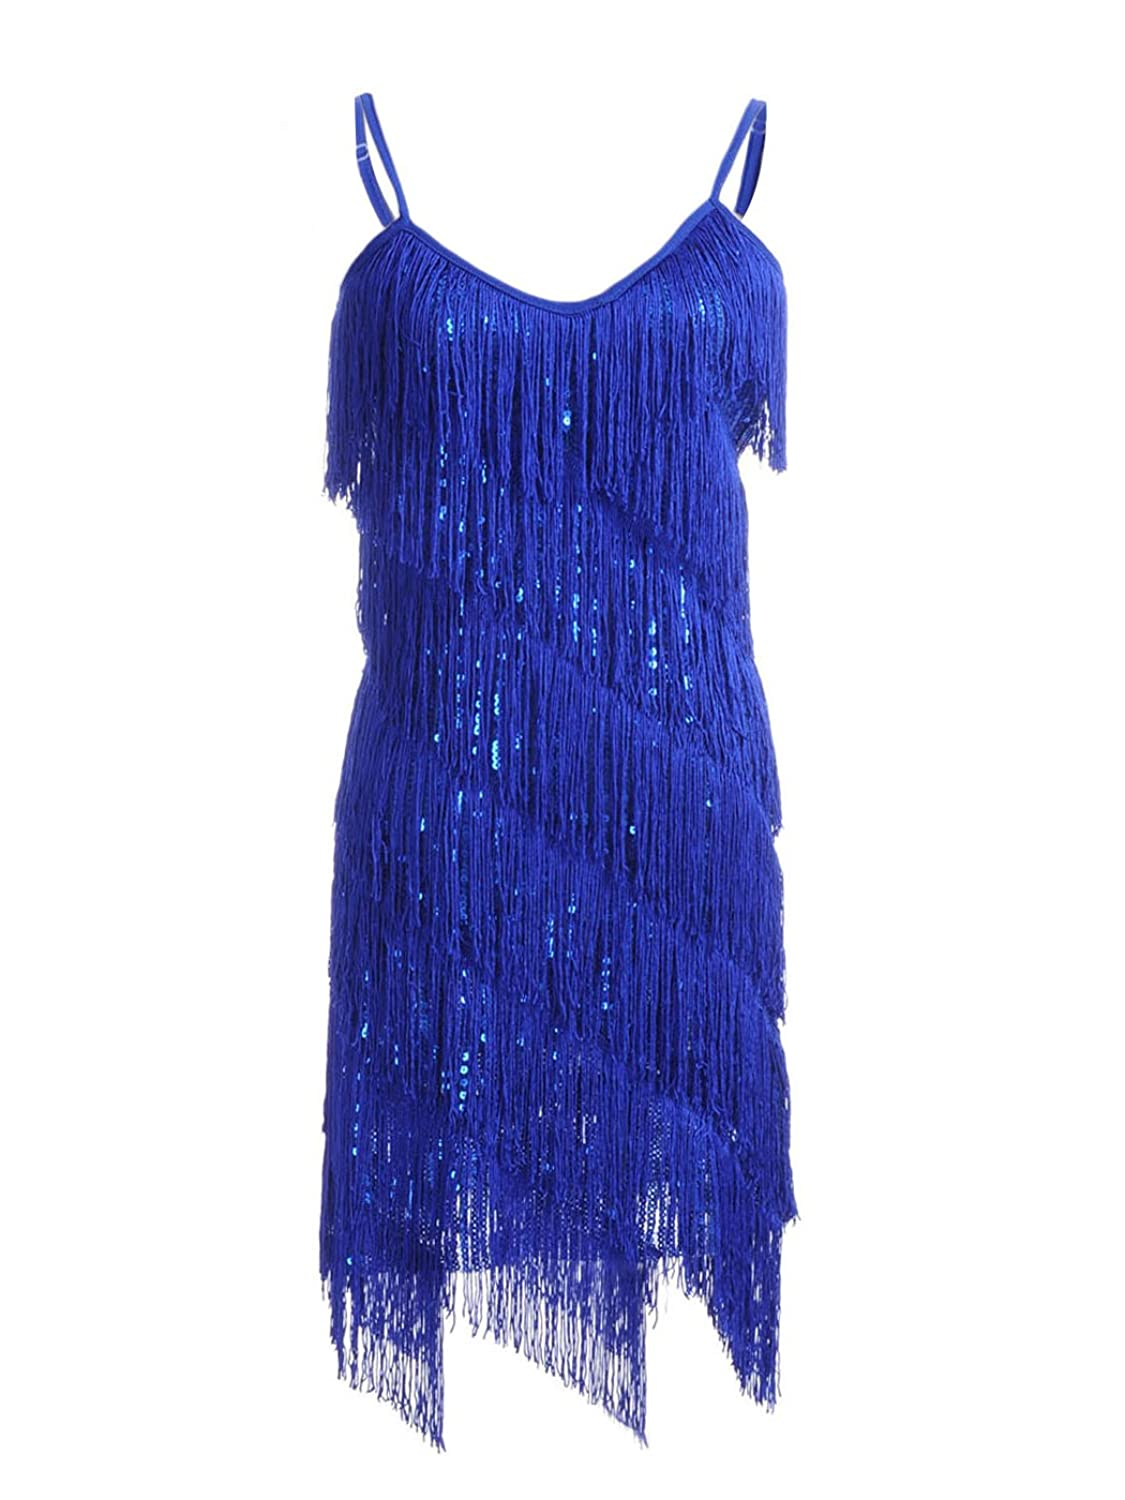 41c31266d05a2 SEQUIN AND FRINGE FLAPPER DRESS. Recreate the straight silhouette look of  the 1920s with this super cute and sexy flapper dress featuring a fun fringe  look ...